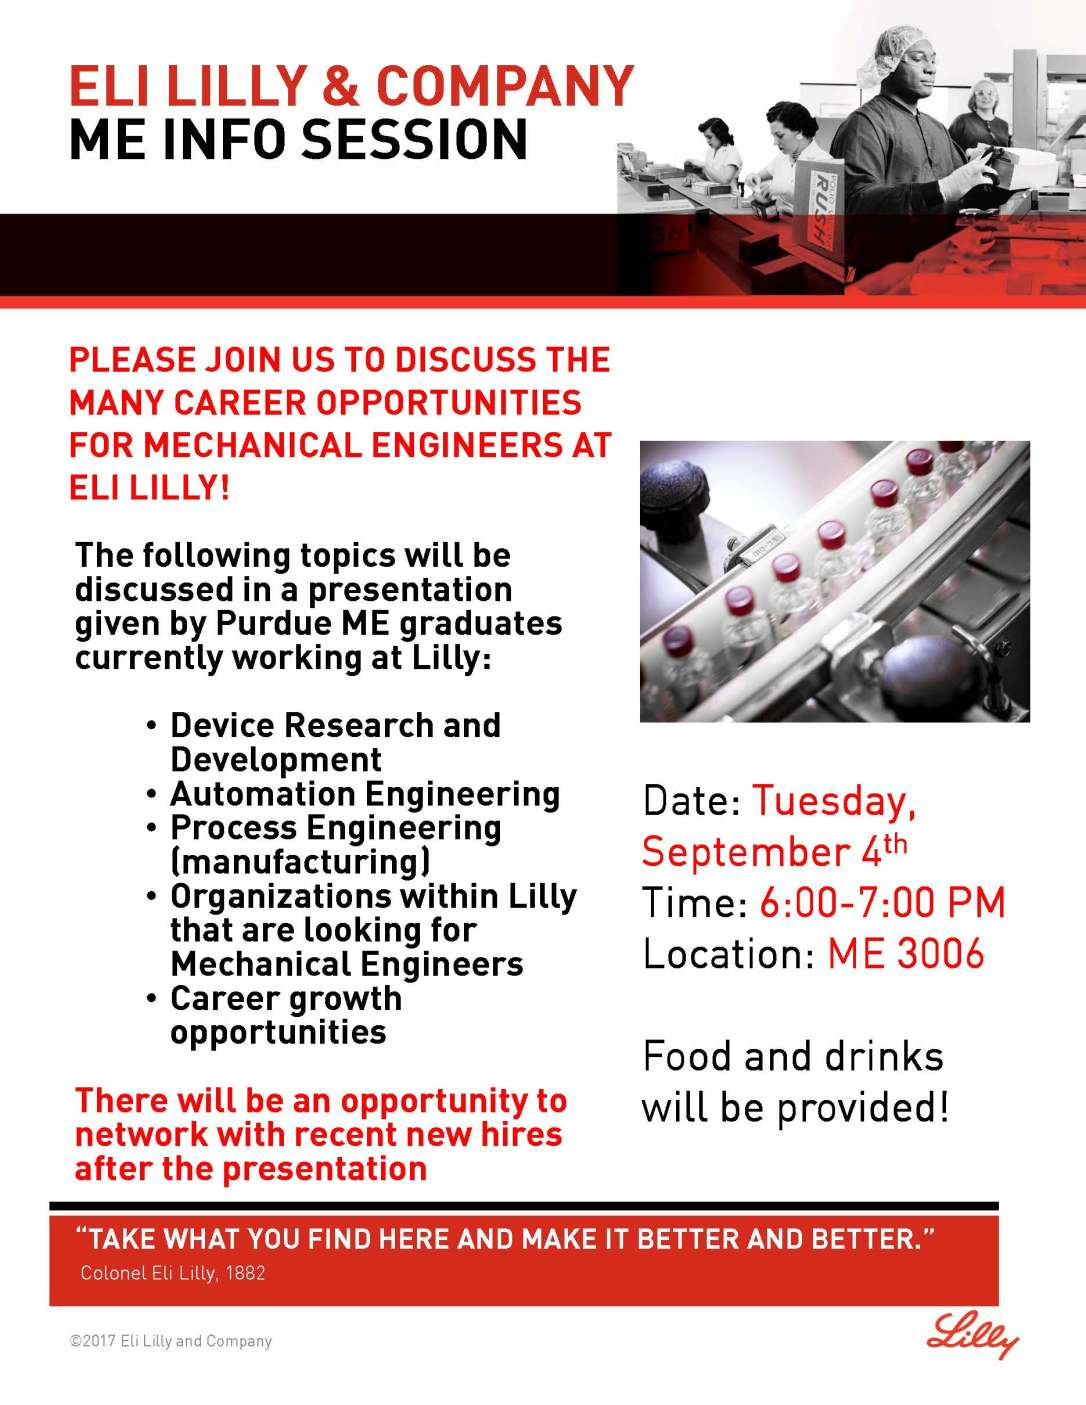 Lilly ME Info Session Flyer.jpg